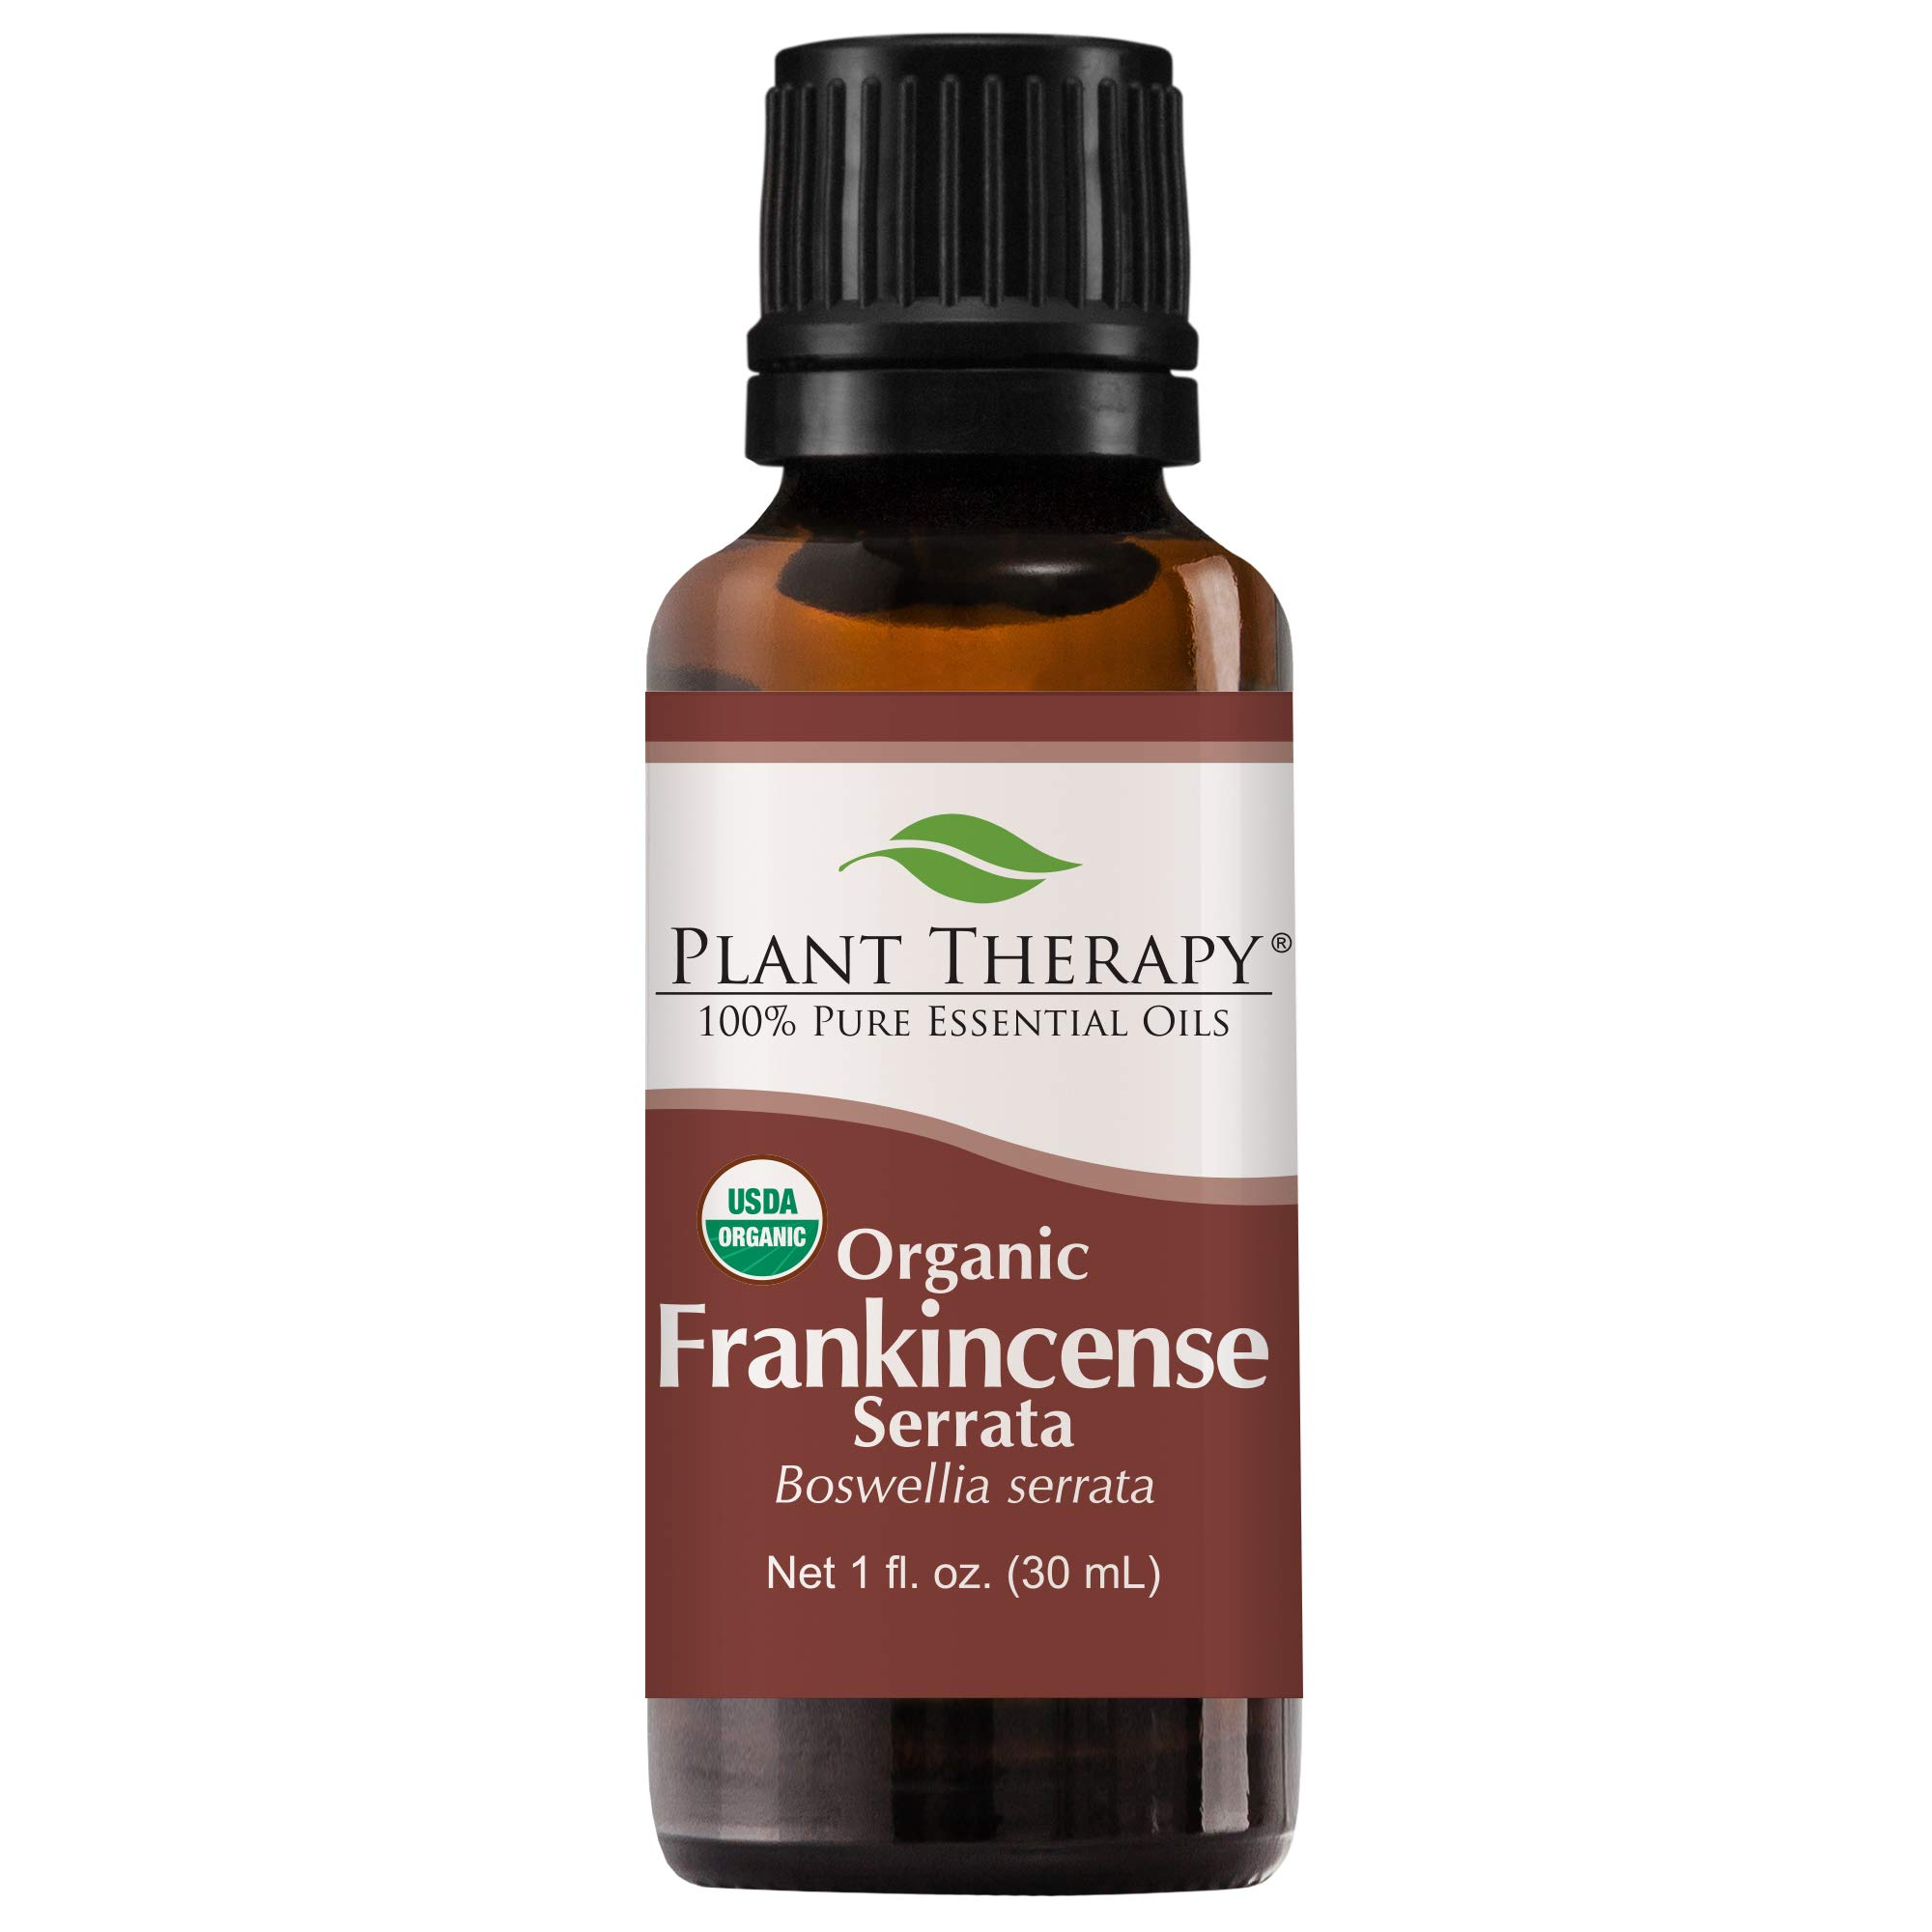 Plant Therapy Frankincense Serrata Organic Essential Oil 100% Pure, USDA Certified Organic, Undiluted, Natural Aromatherapy, Therapeutic Grade 30 mL (1 oz) by Plant Therapy